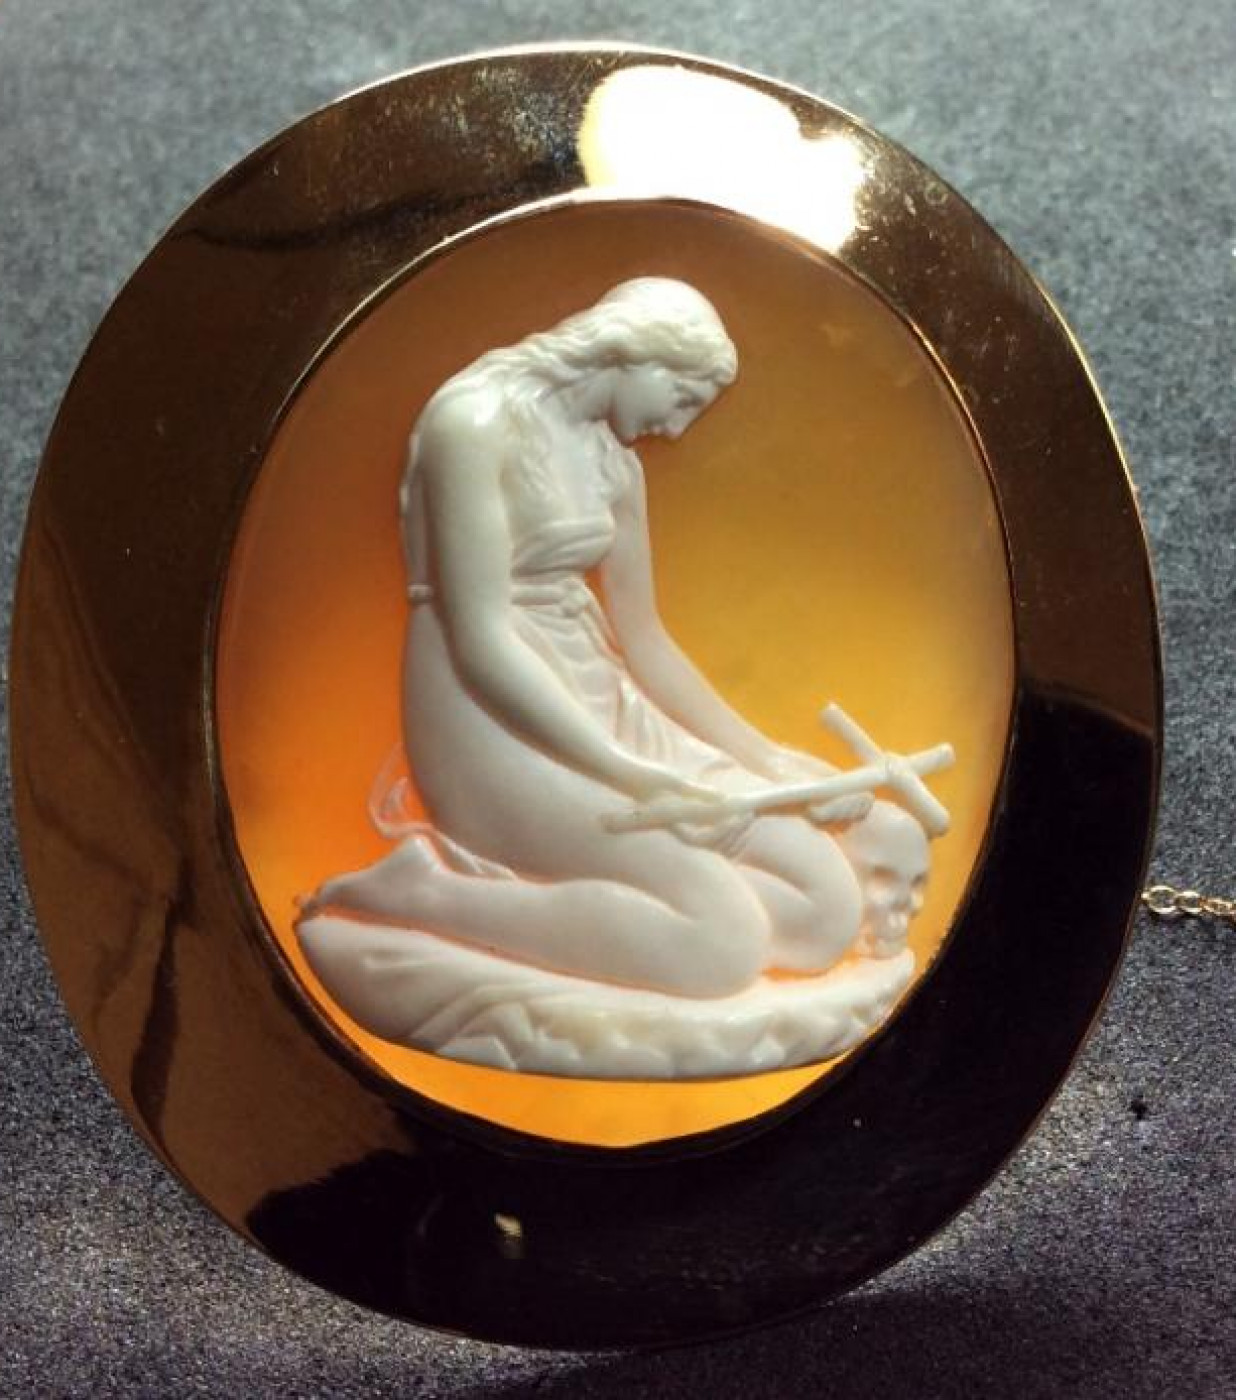 Oustanding Cameo of a Penitent Mary Magdalene after Canova